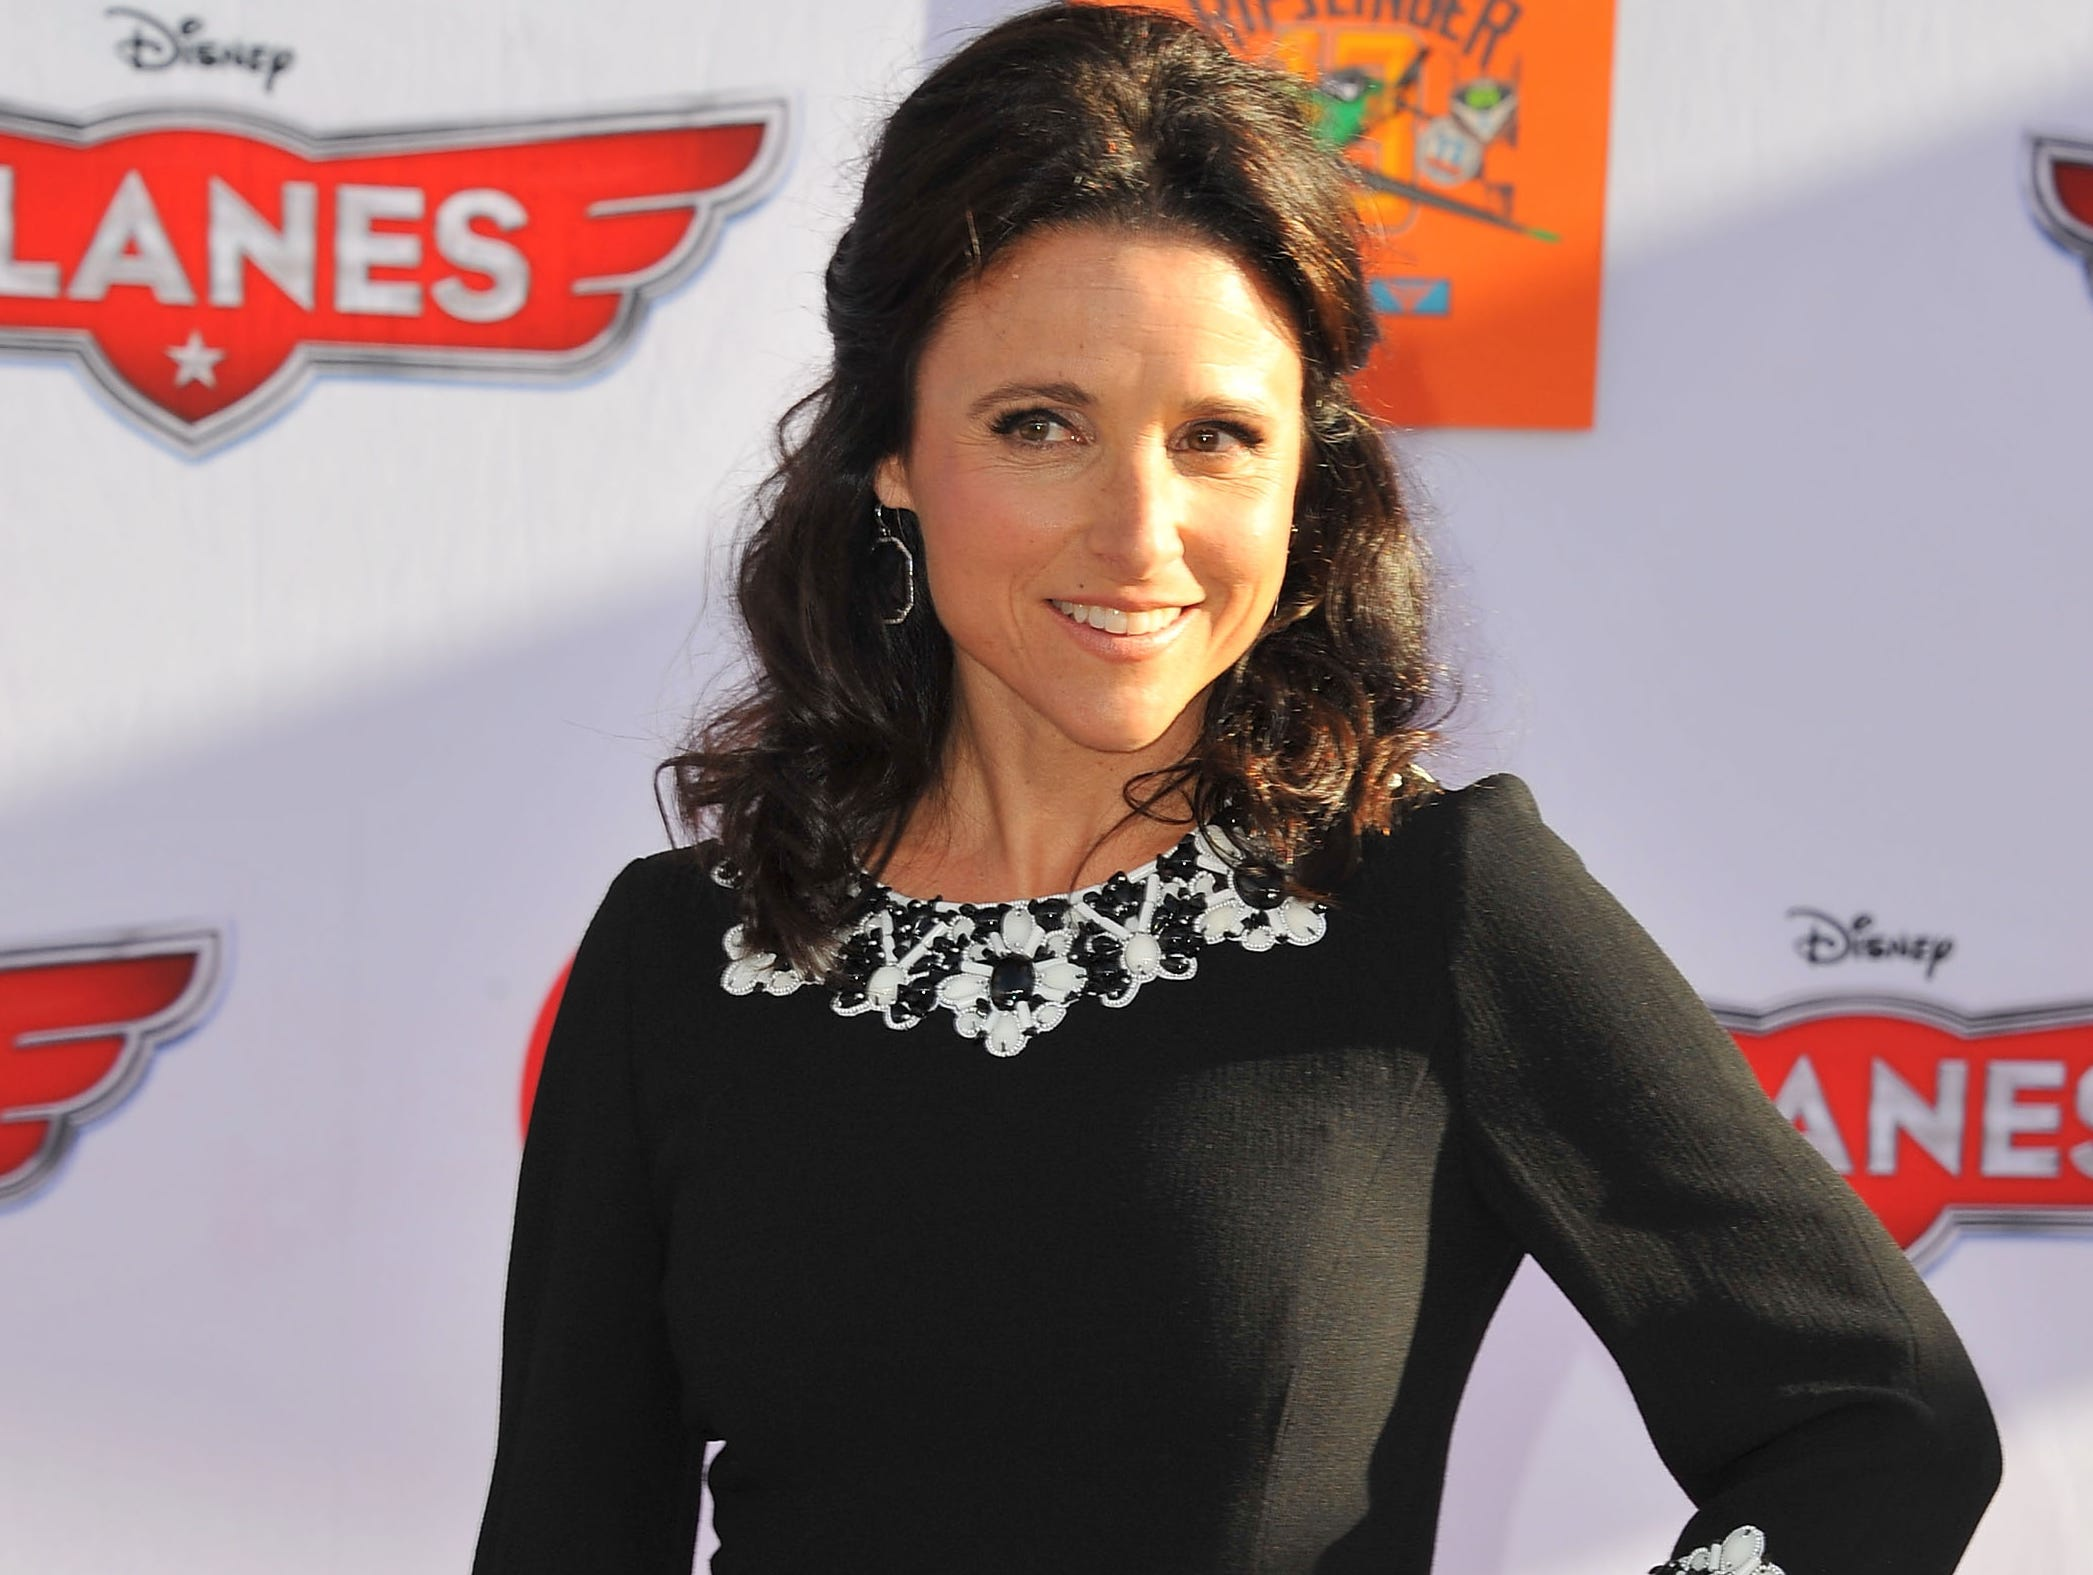 Julia Louis-Dreyfus is picture-perfect at the premiere of Disney's 'Planes' on Aug. 5 in an Andrew Gn frock and an Edie Parker clutch.